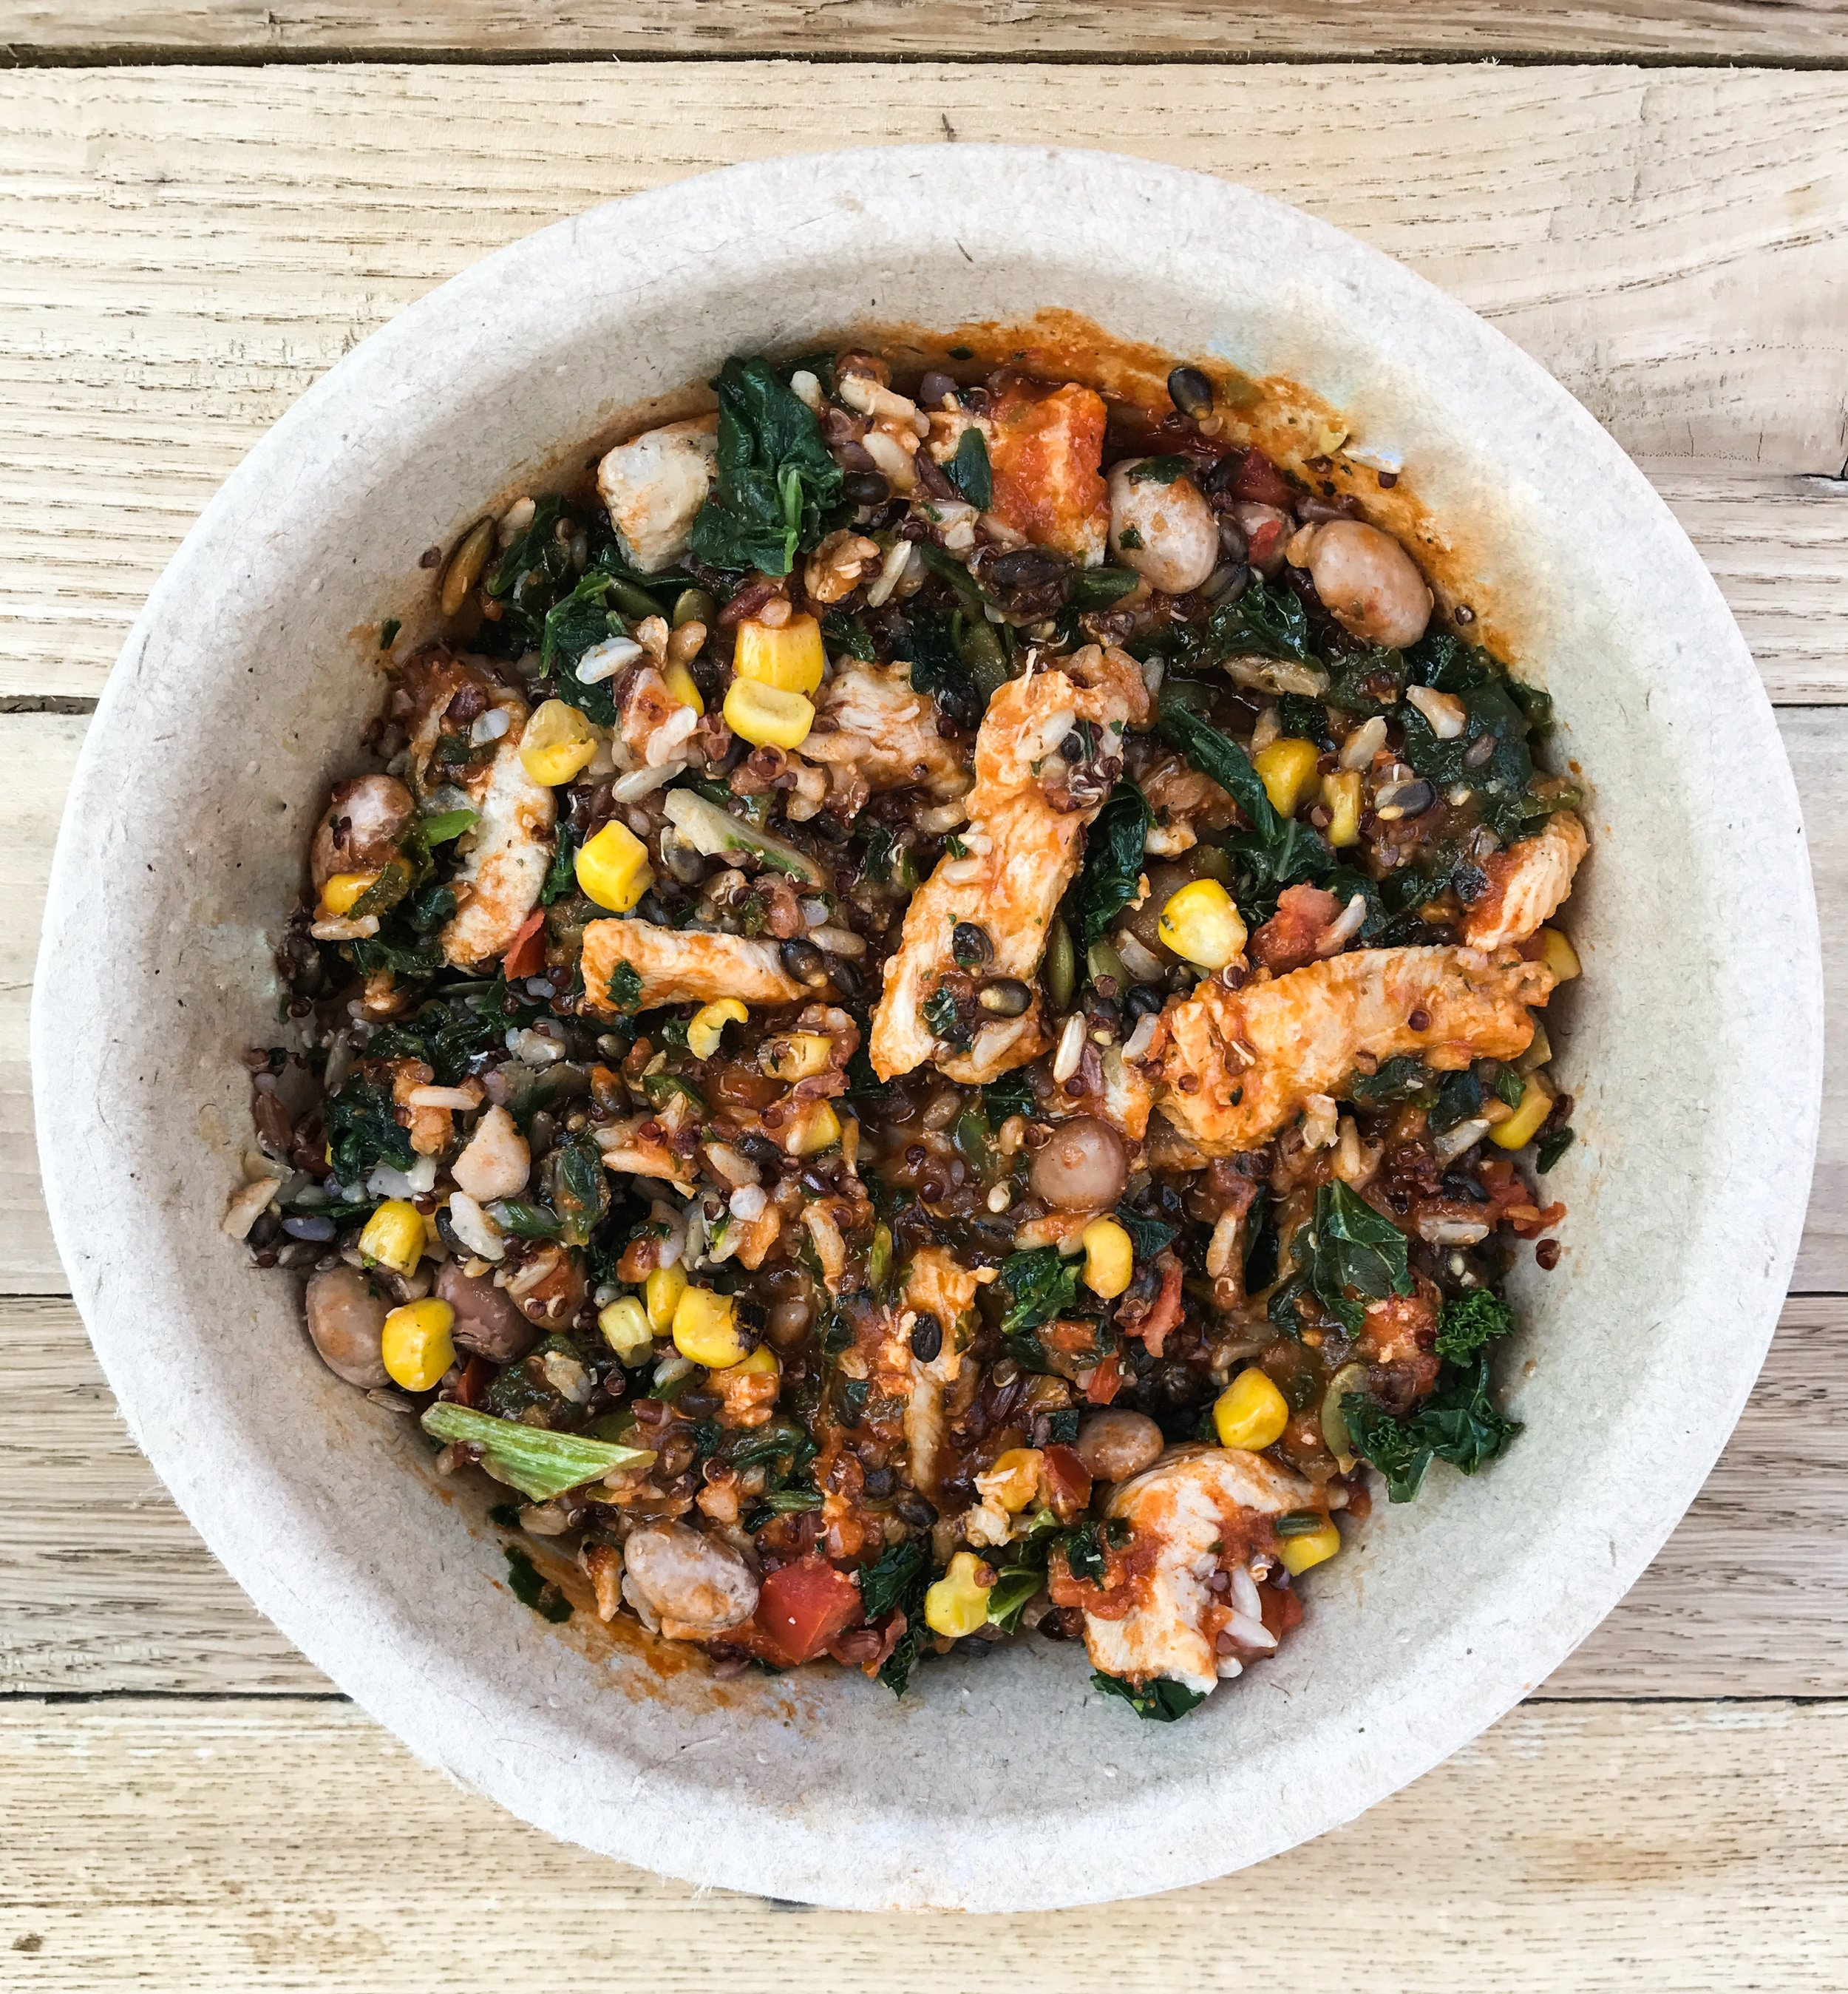 Adobo Chicken Bowl by Healthy Choice. Good for you ready to eat meal solutions.